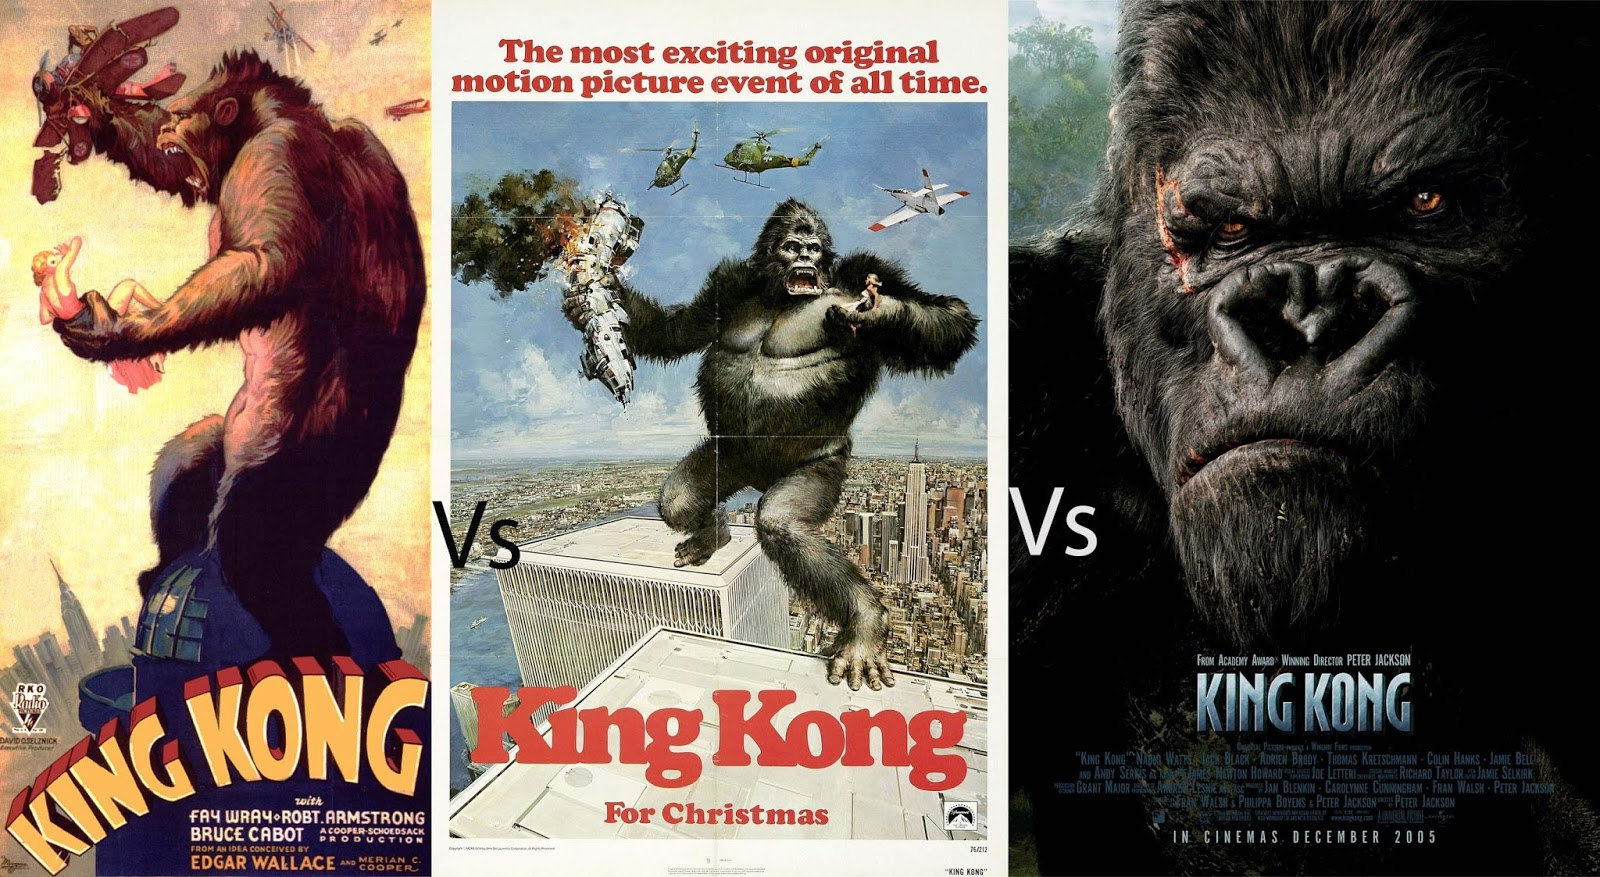 king kong 1933 vs 1976 vs 2005 conclusion